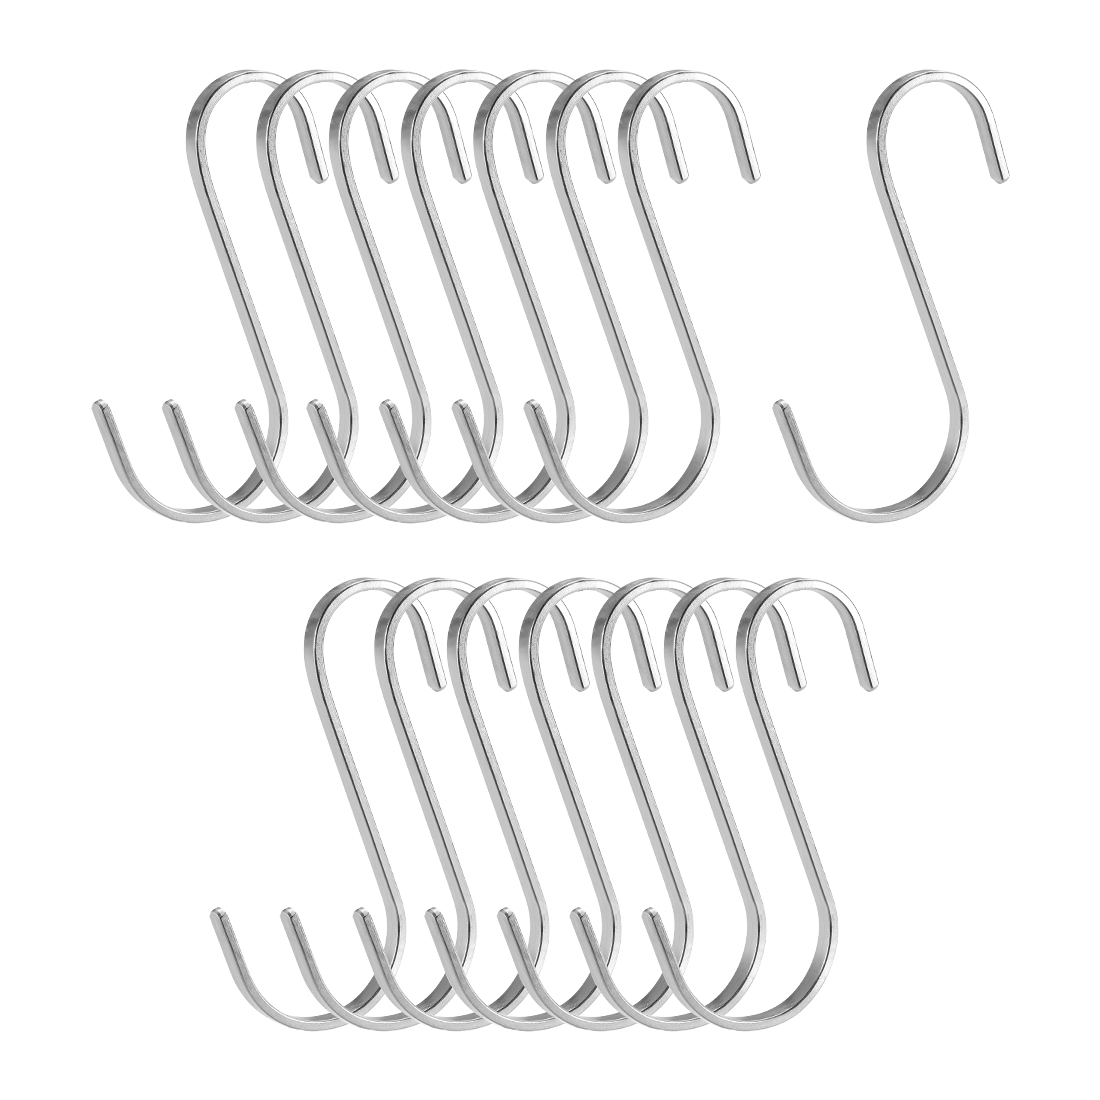 "Stainless Steel S Hooks 3.6"" Flat S Shaped Hanger Multiple Uses 15pcs"